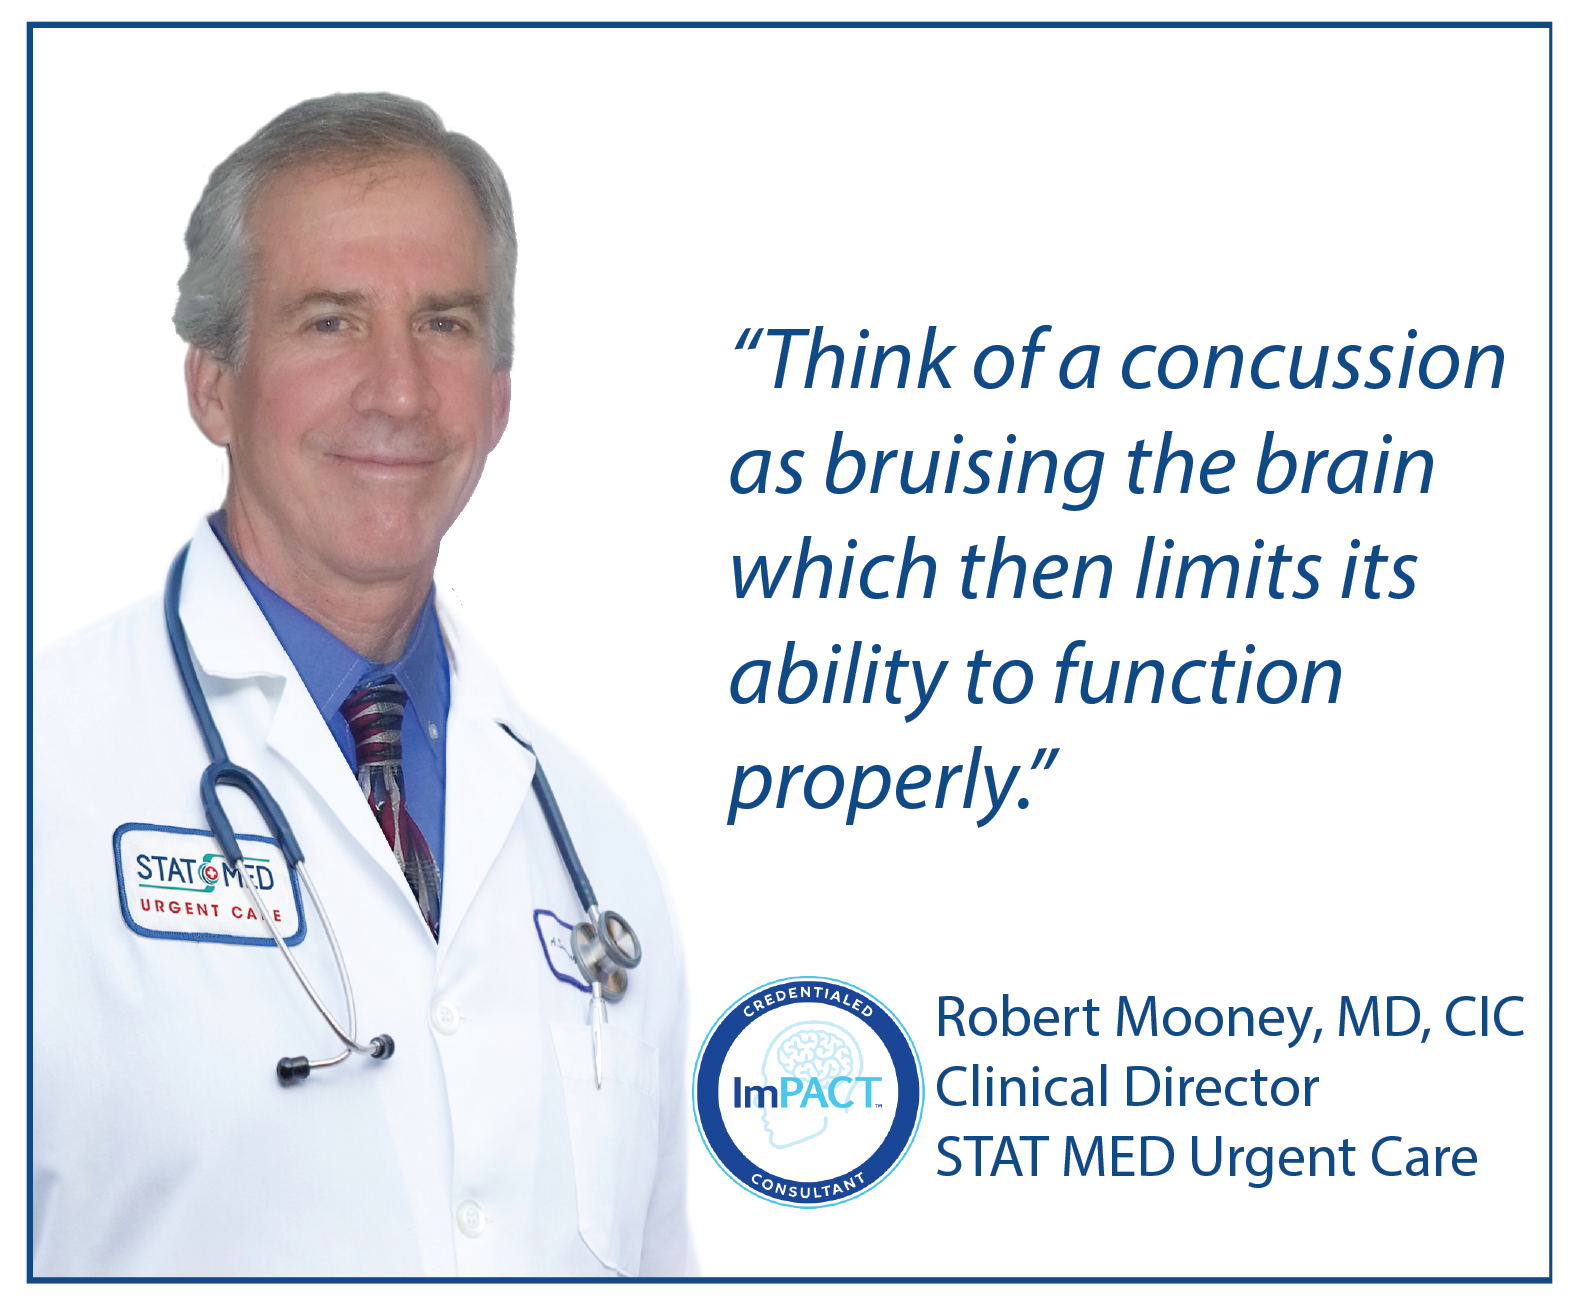 STAT MED Urgent Care Clinical Director Dr. Robert Mooney, CIC, explains concussion